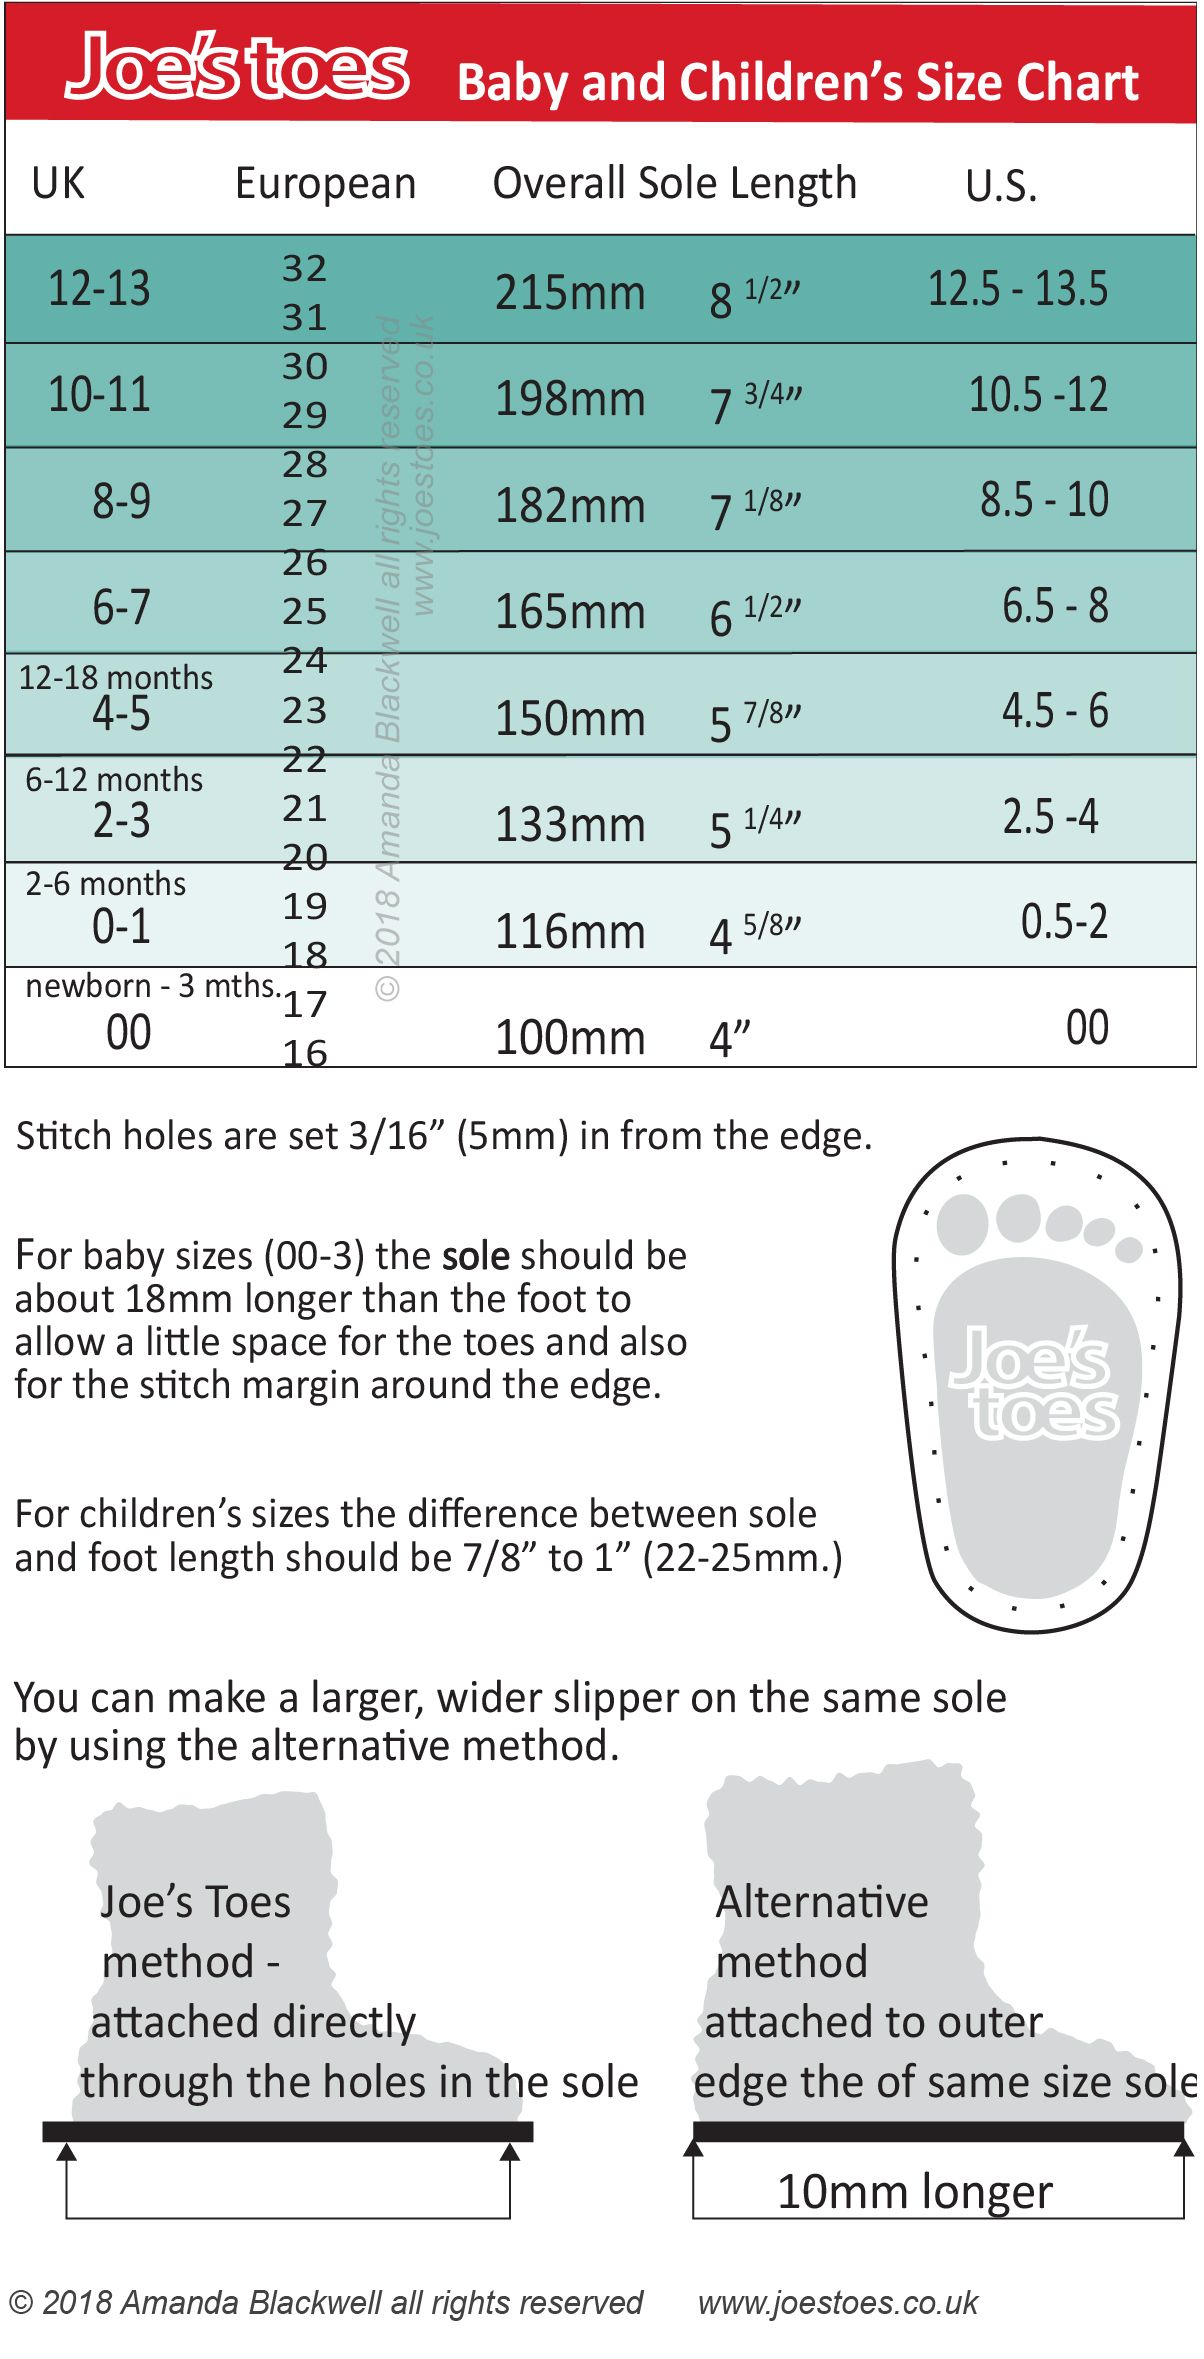 Baby and child shoe size conversion chart shows uk european and baby and child shoe size conversion chart shows uk european and us shoe sizes and actual length of joes toes soles in inches and centimetres pin also geenschuldenfo Image collections